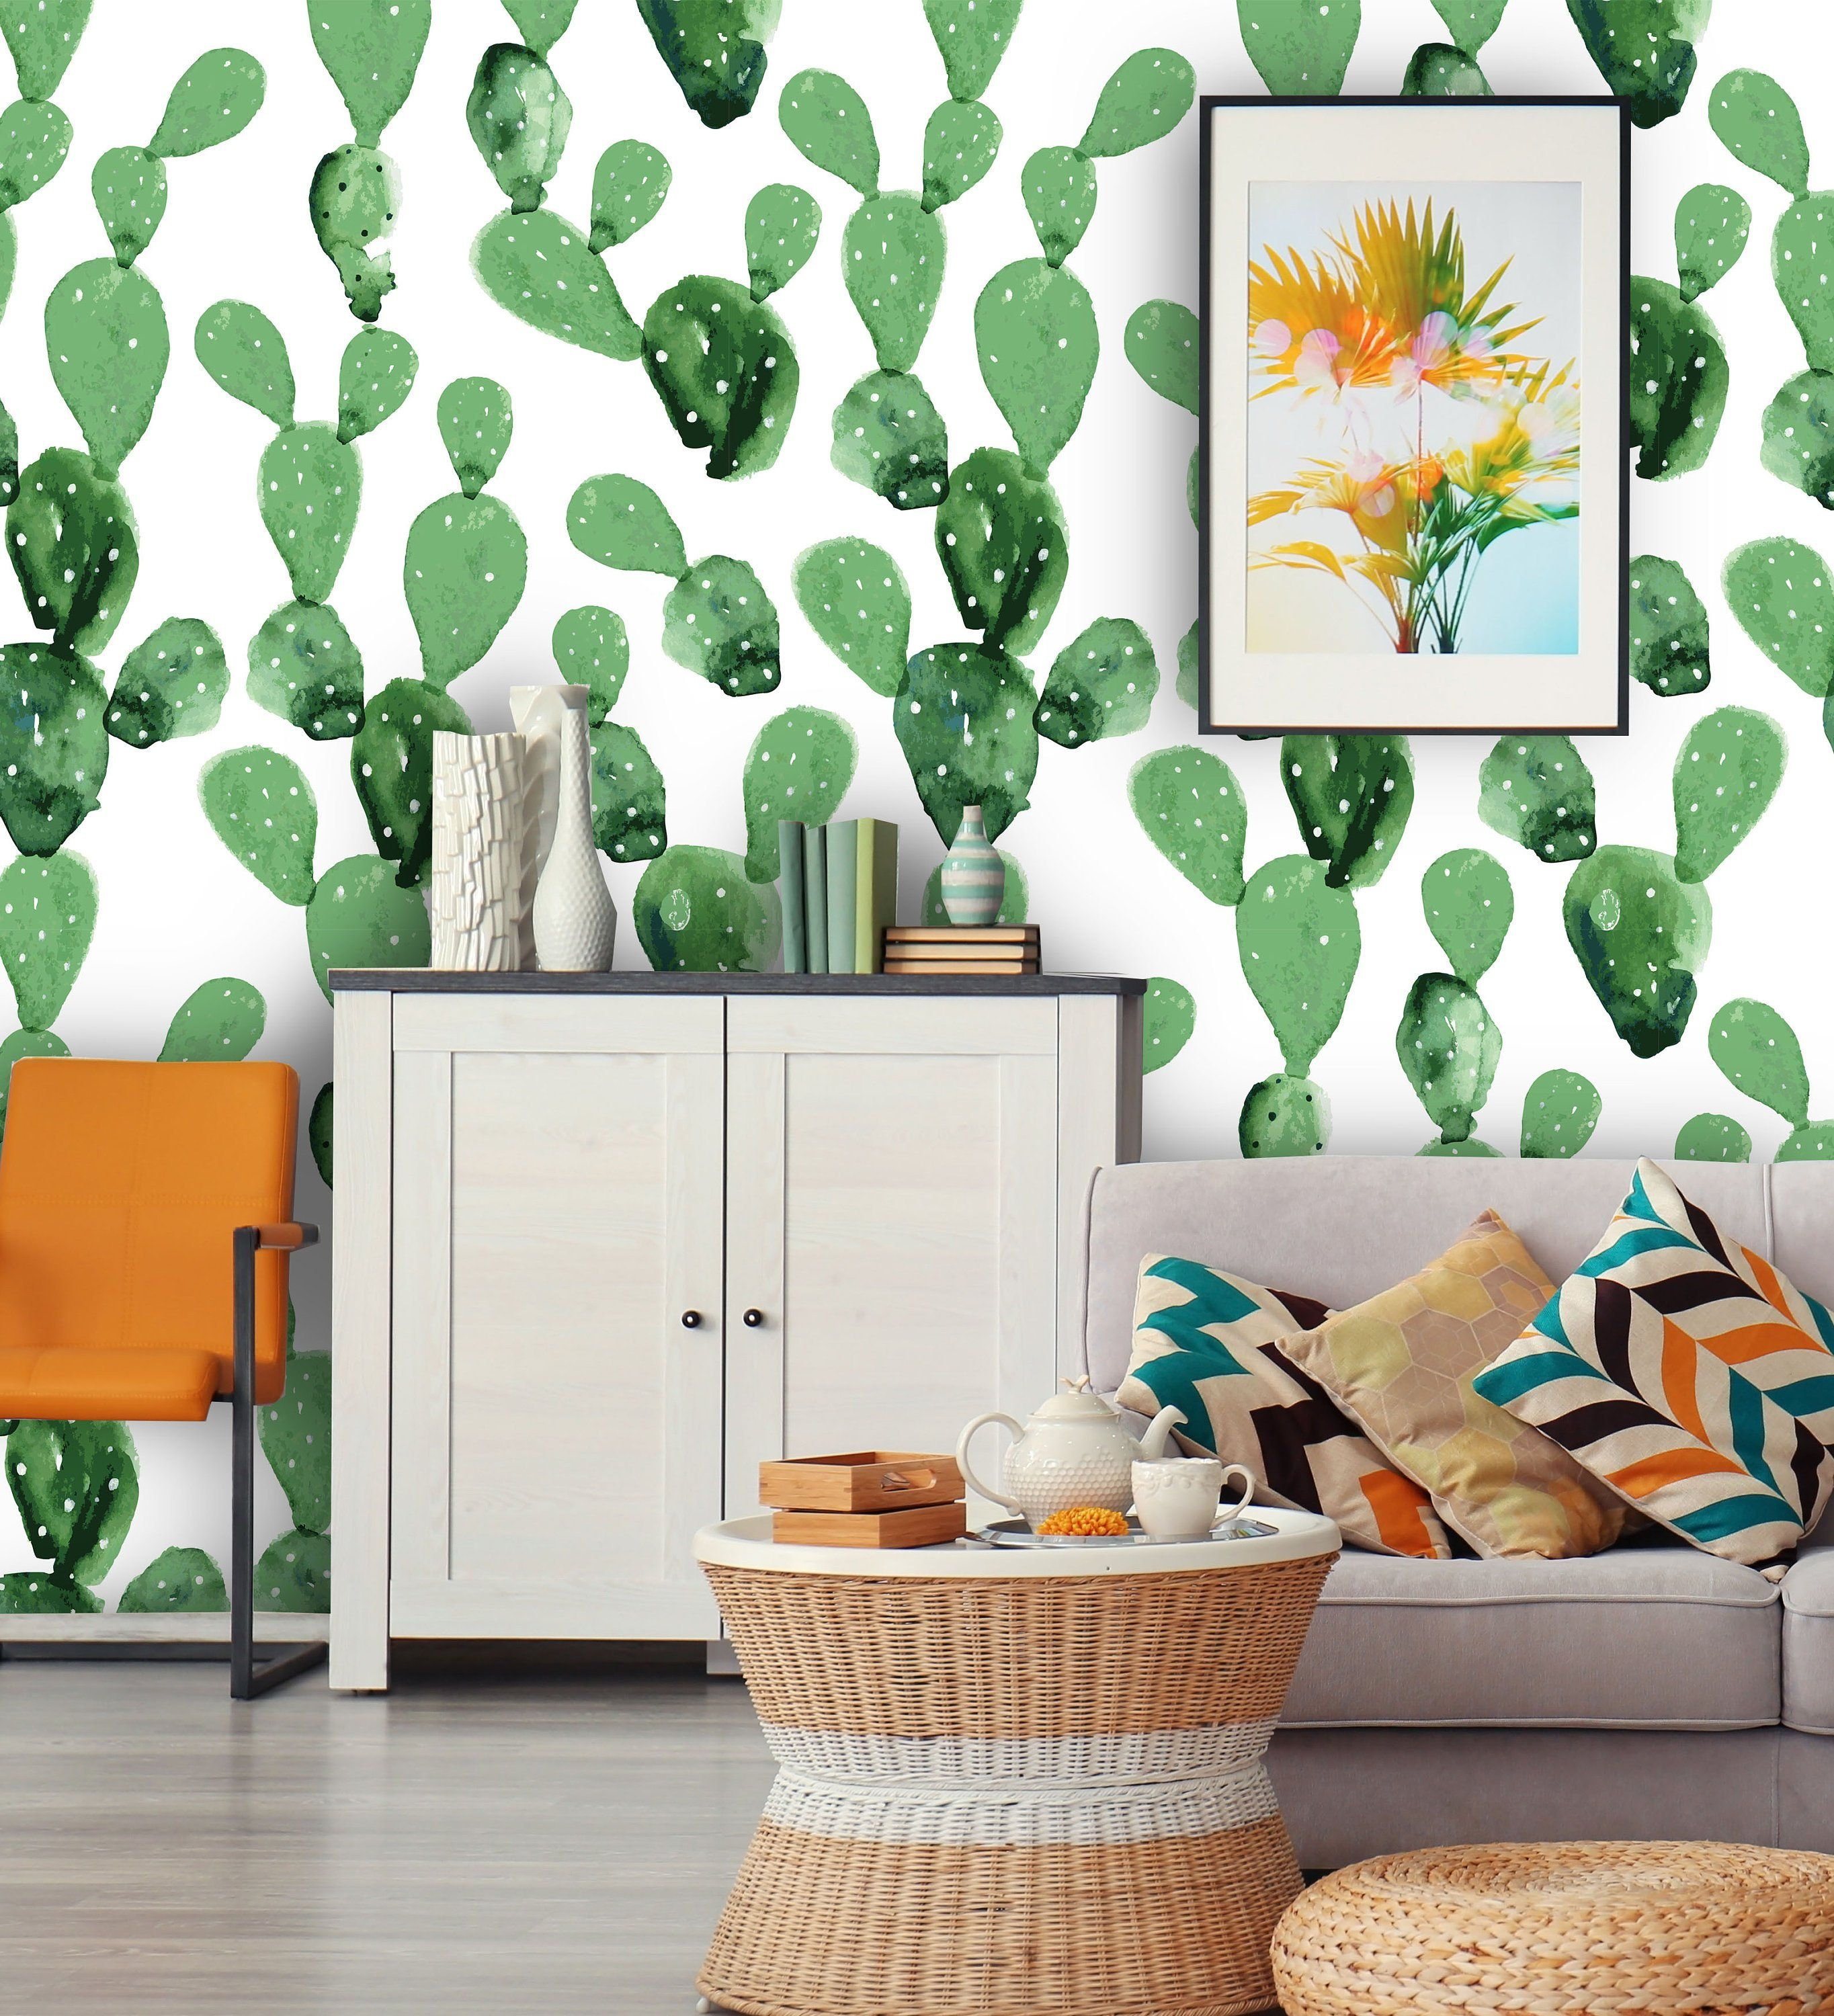 Watercolor Cactuses Self Adhesive Removable Wallpaper This Vinyl Looks Great In Your Living Nursery Or Nursery Room Decor Peel N Stick Wallpaper Wall Murals